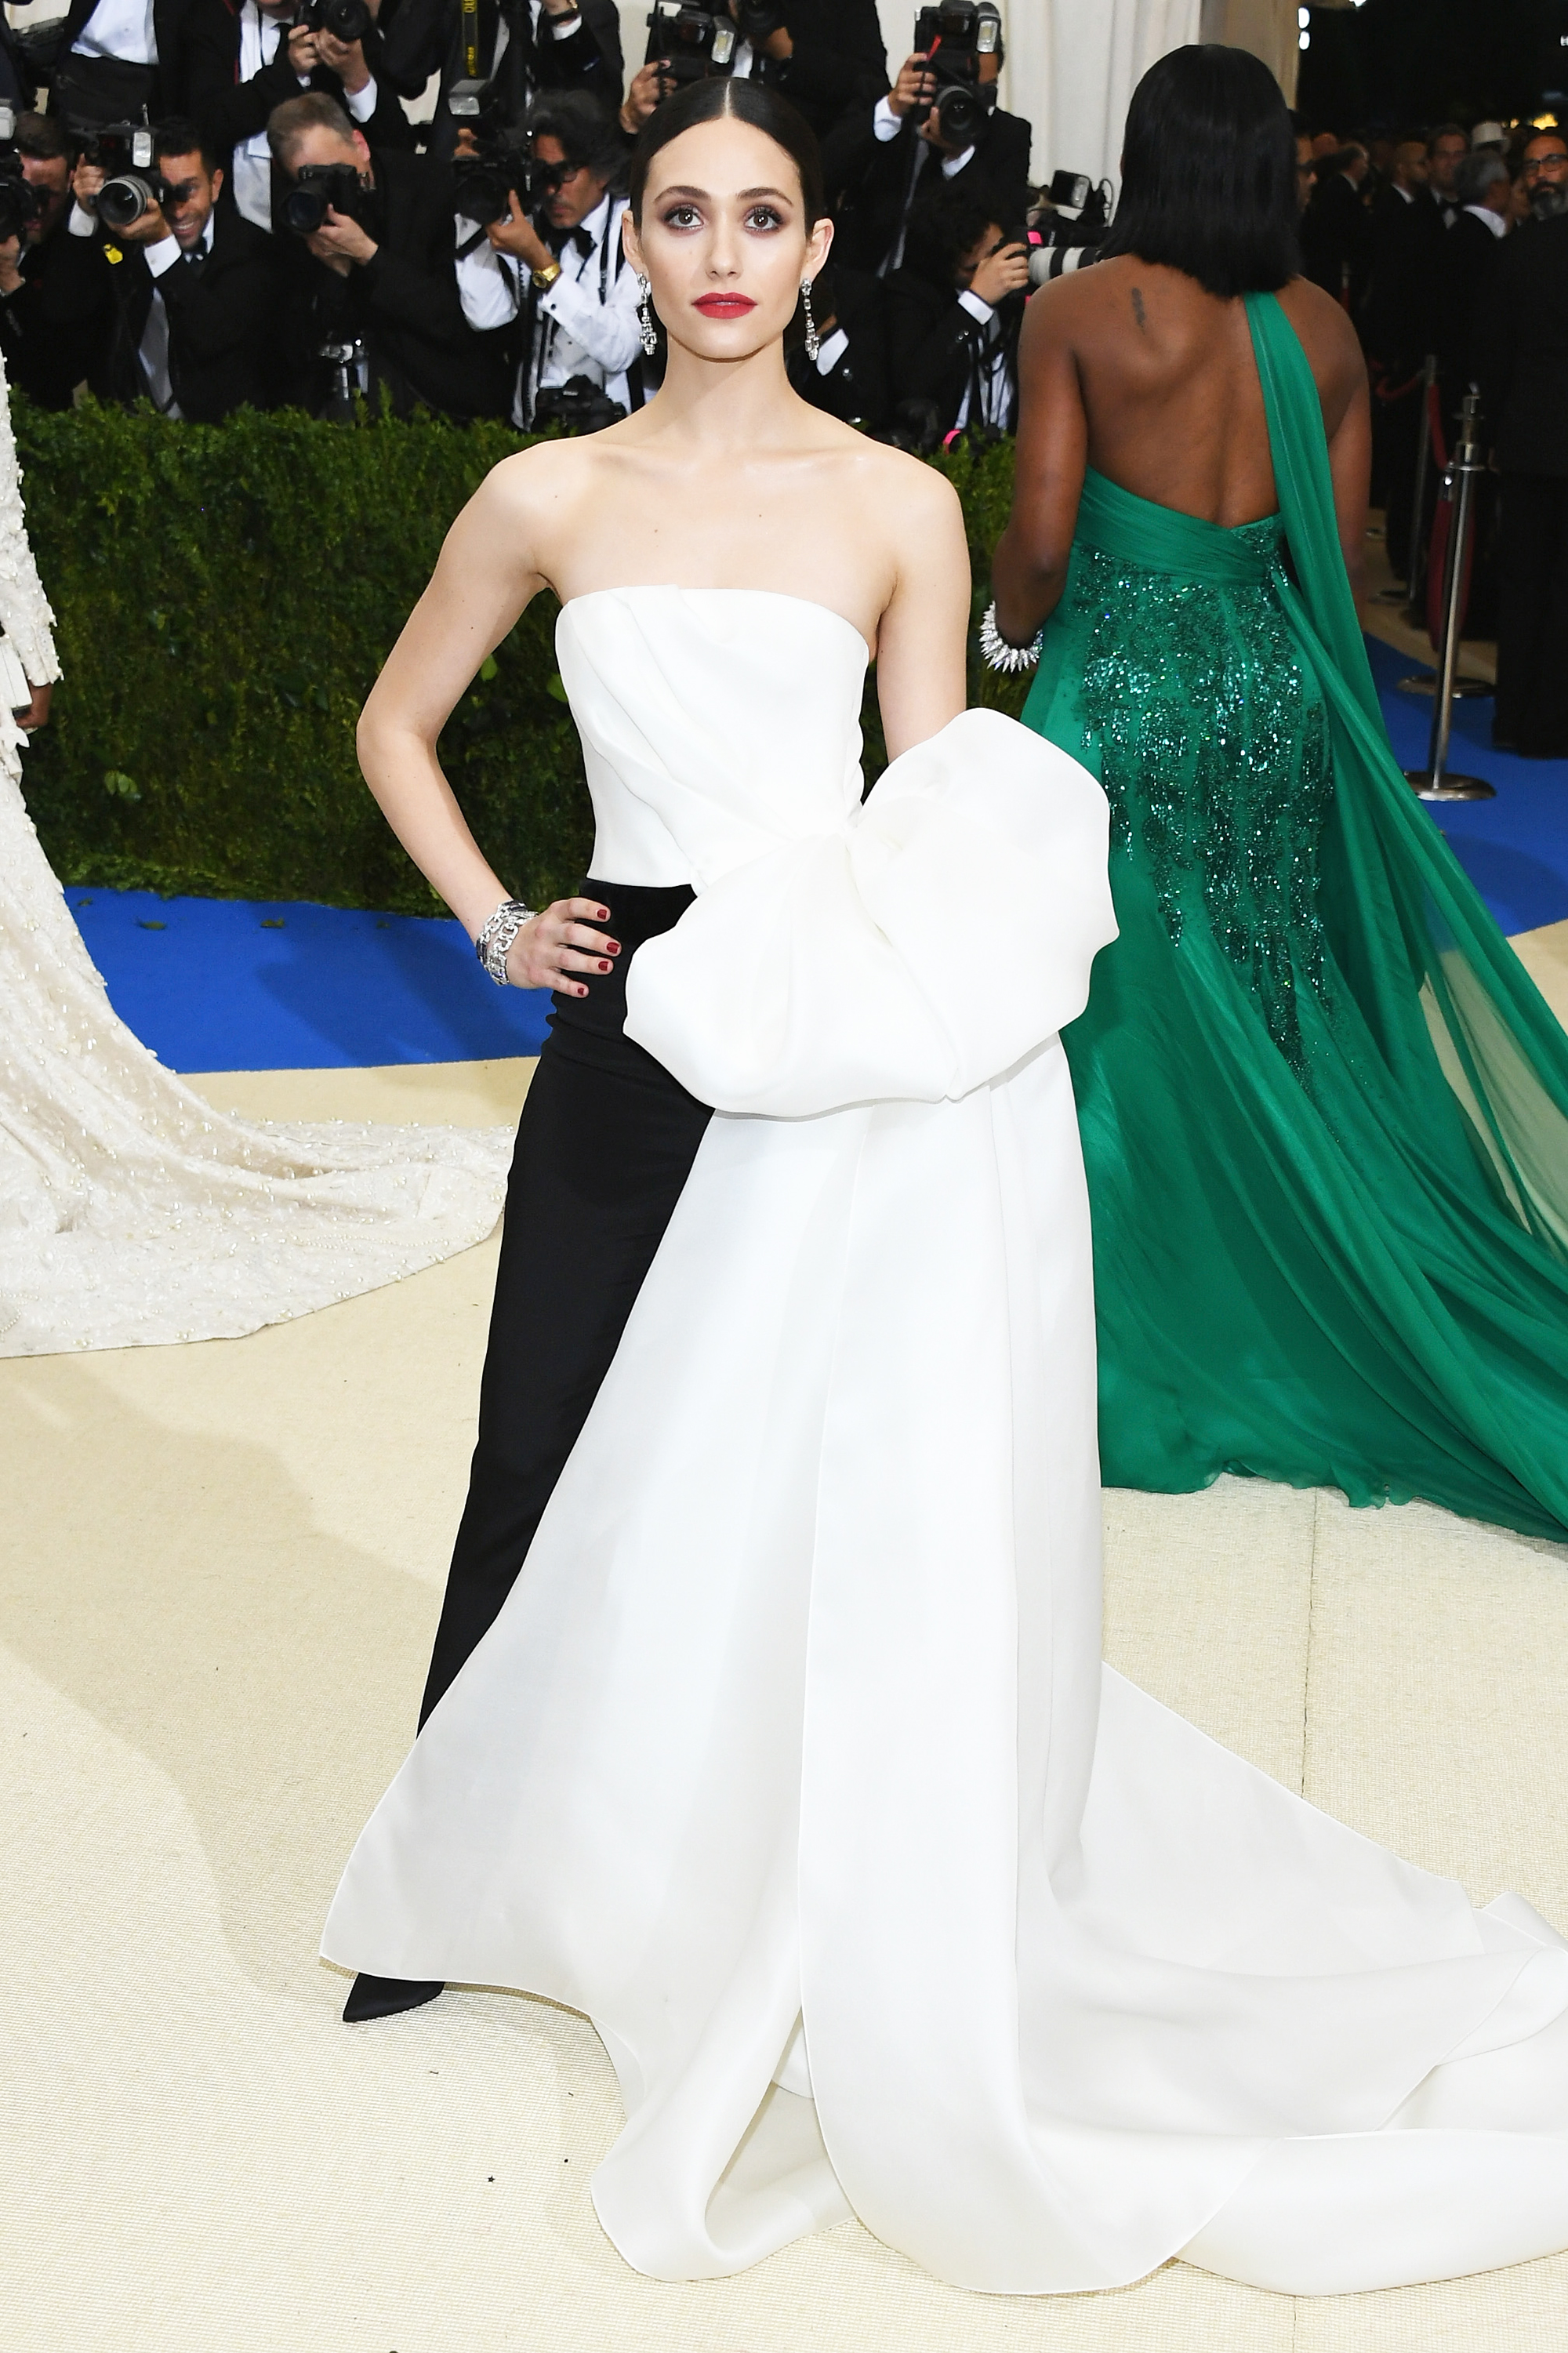 Emmy Rossum attends The Metropolitan Museum of Art's Costume Institute benefit gala celebrating the opening of the Rei Kawakubo/Comme des Garçons: Art of the In-Between exhibition in New York City, on May 1, 2017.